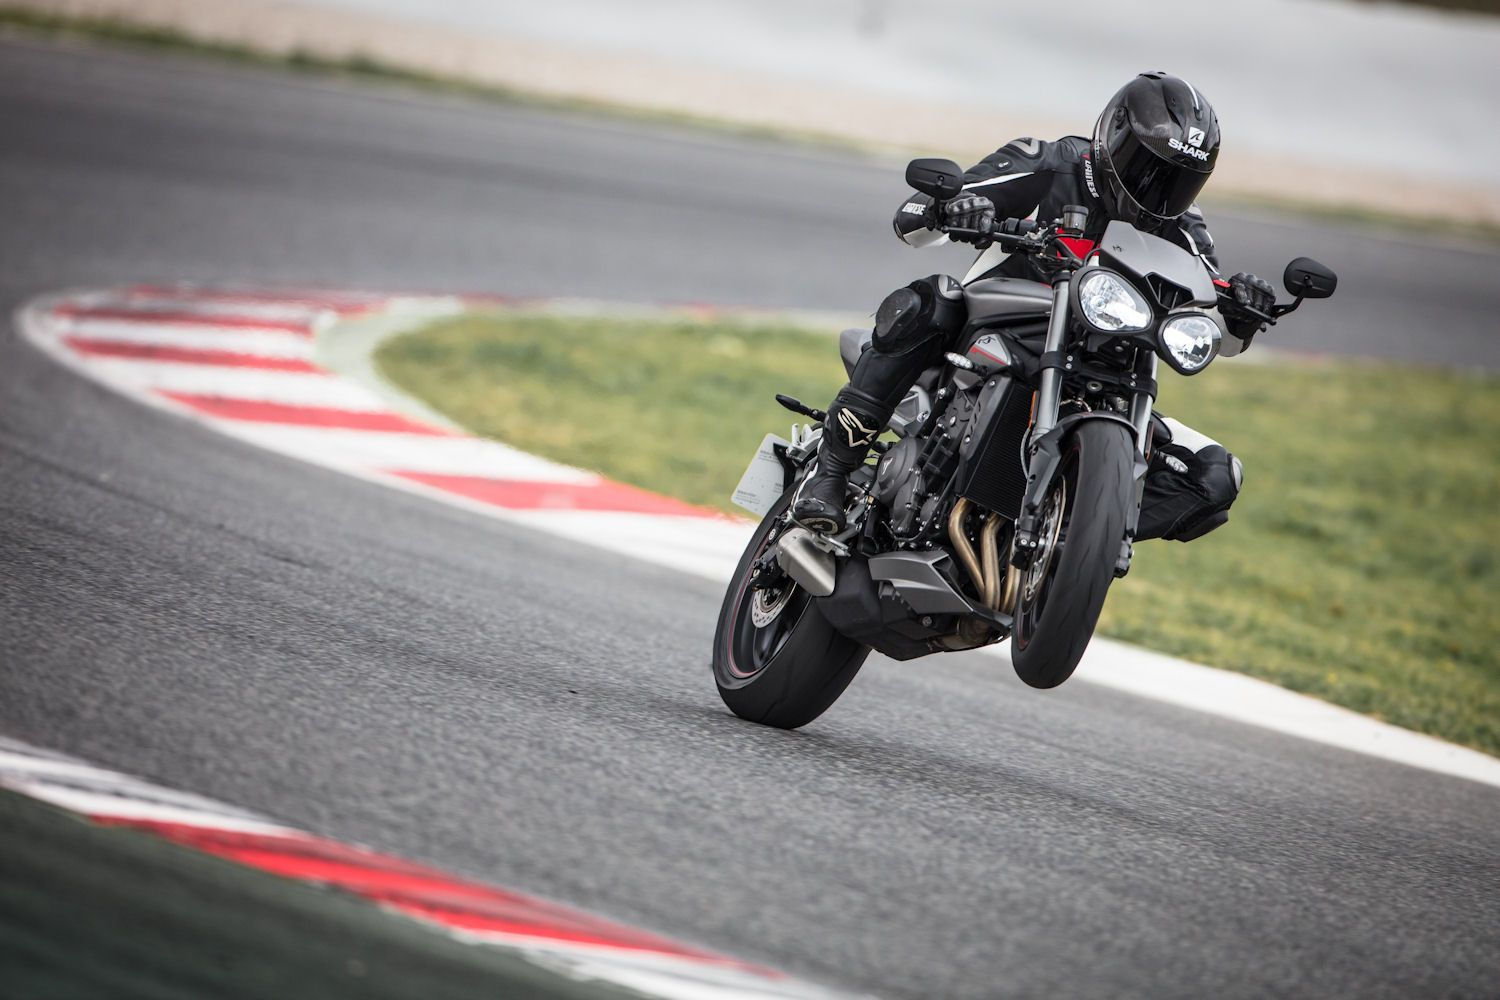 New Triumph Naked Street Triple RS for sale in Cardiff